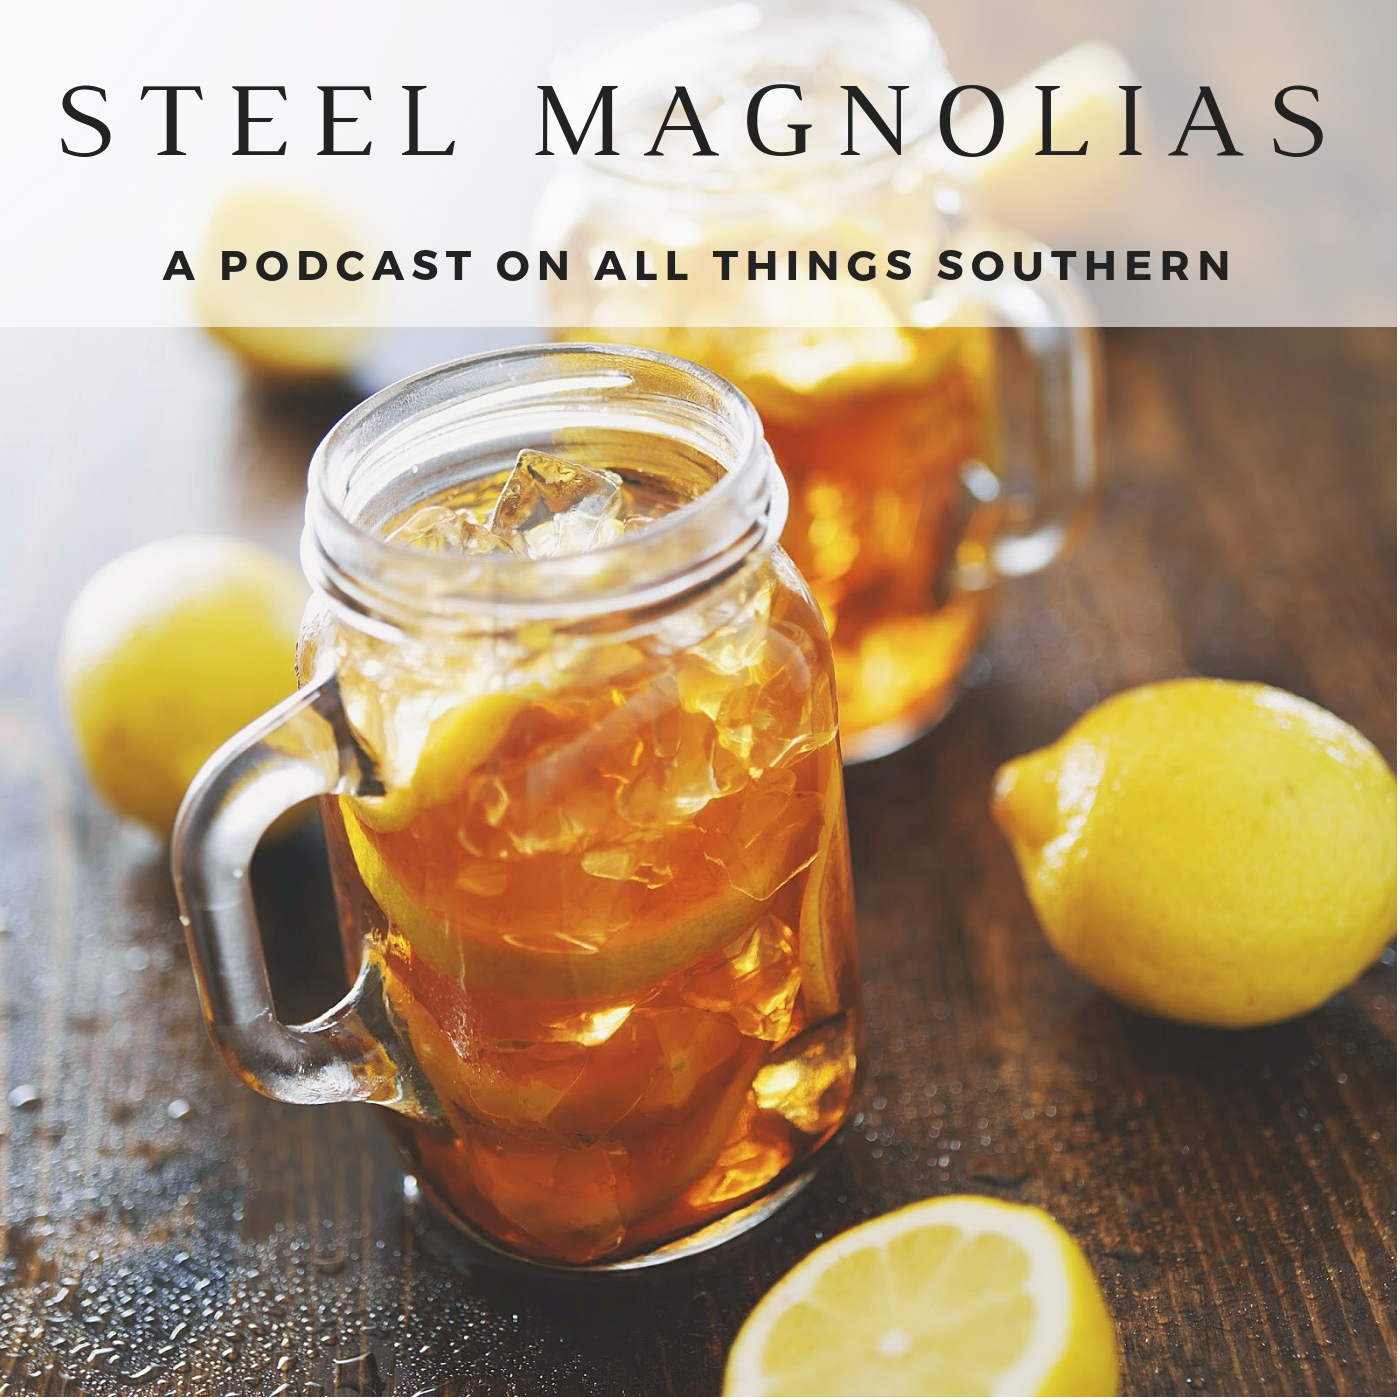 Steel Magnolias - Uplifting Conversations About Life in the South show art